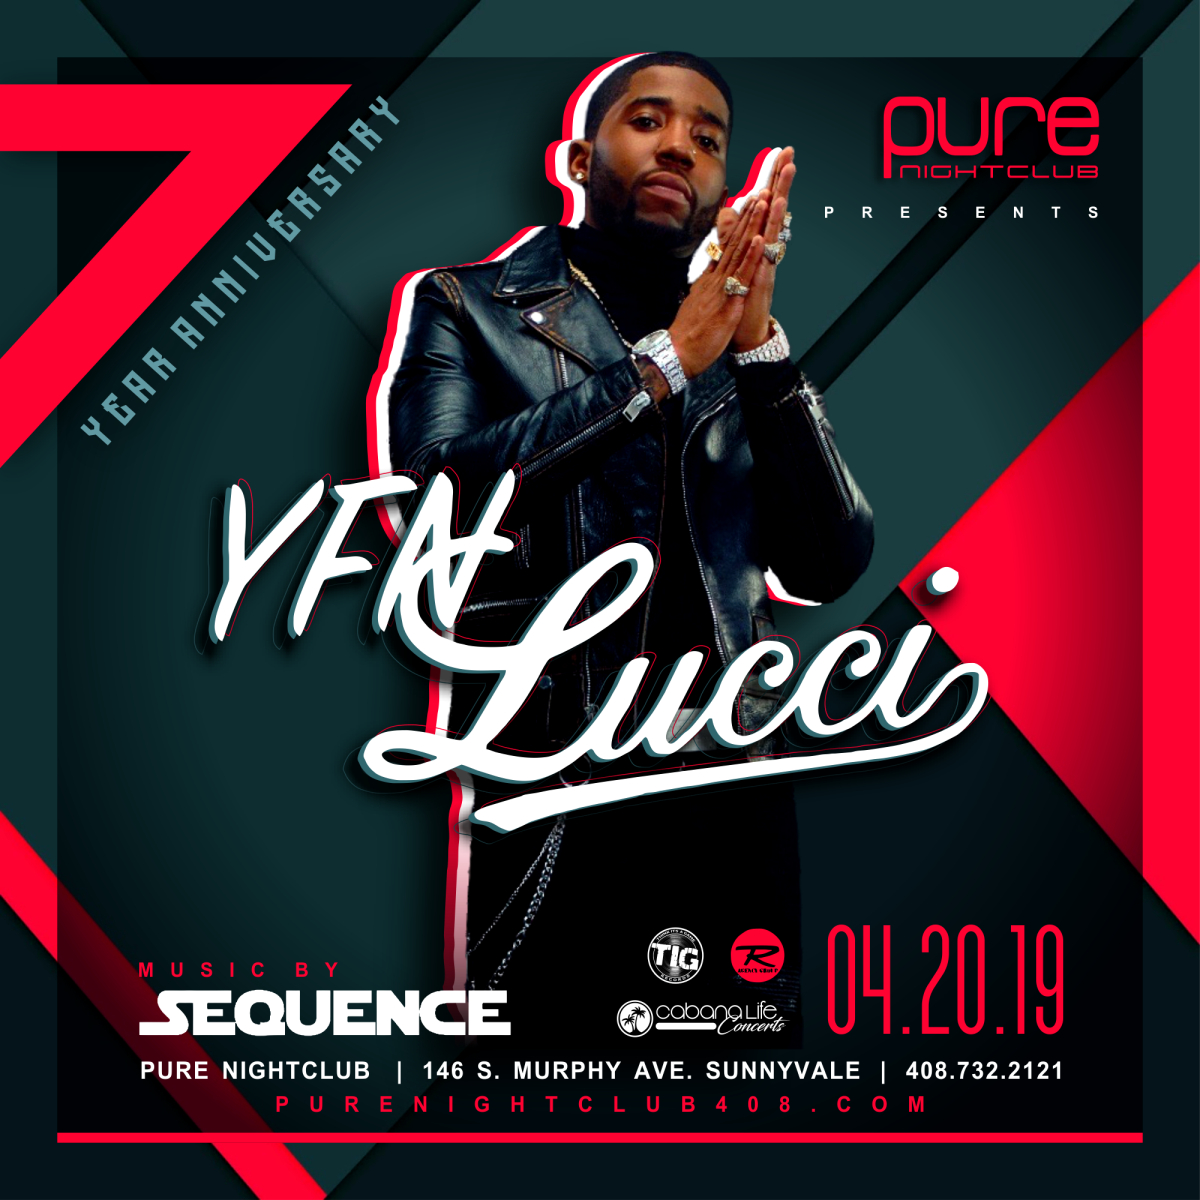 Celebrating our 7 Year Anniversary with YFN Lucci 04 20 19